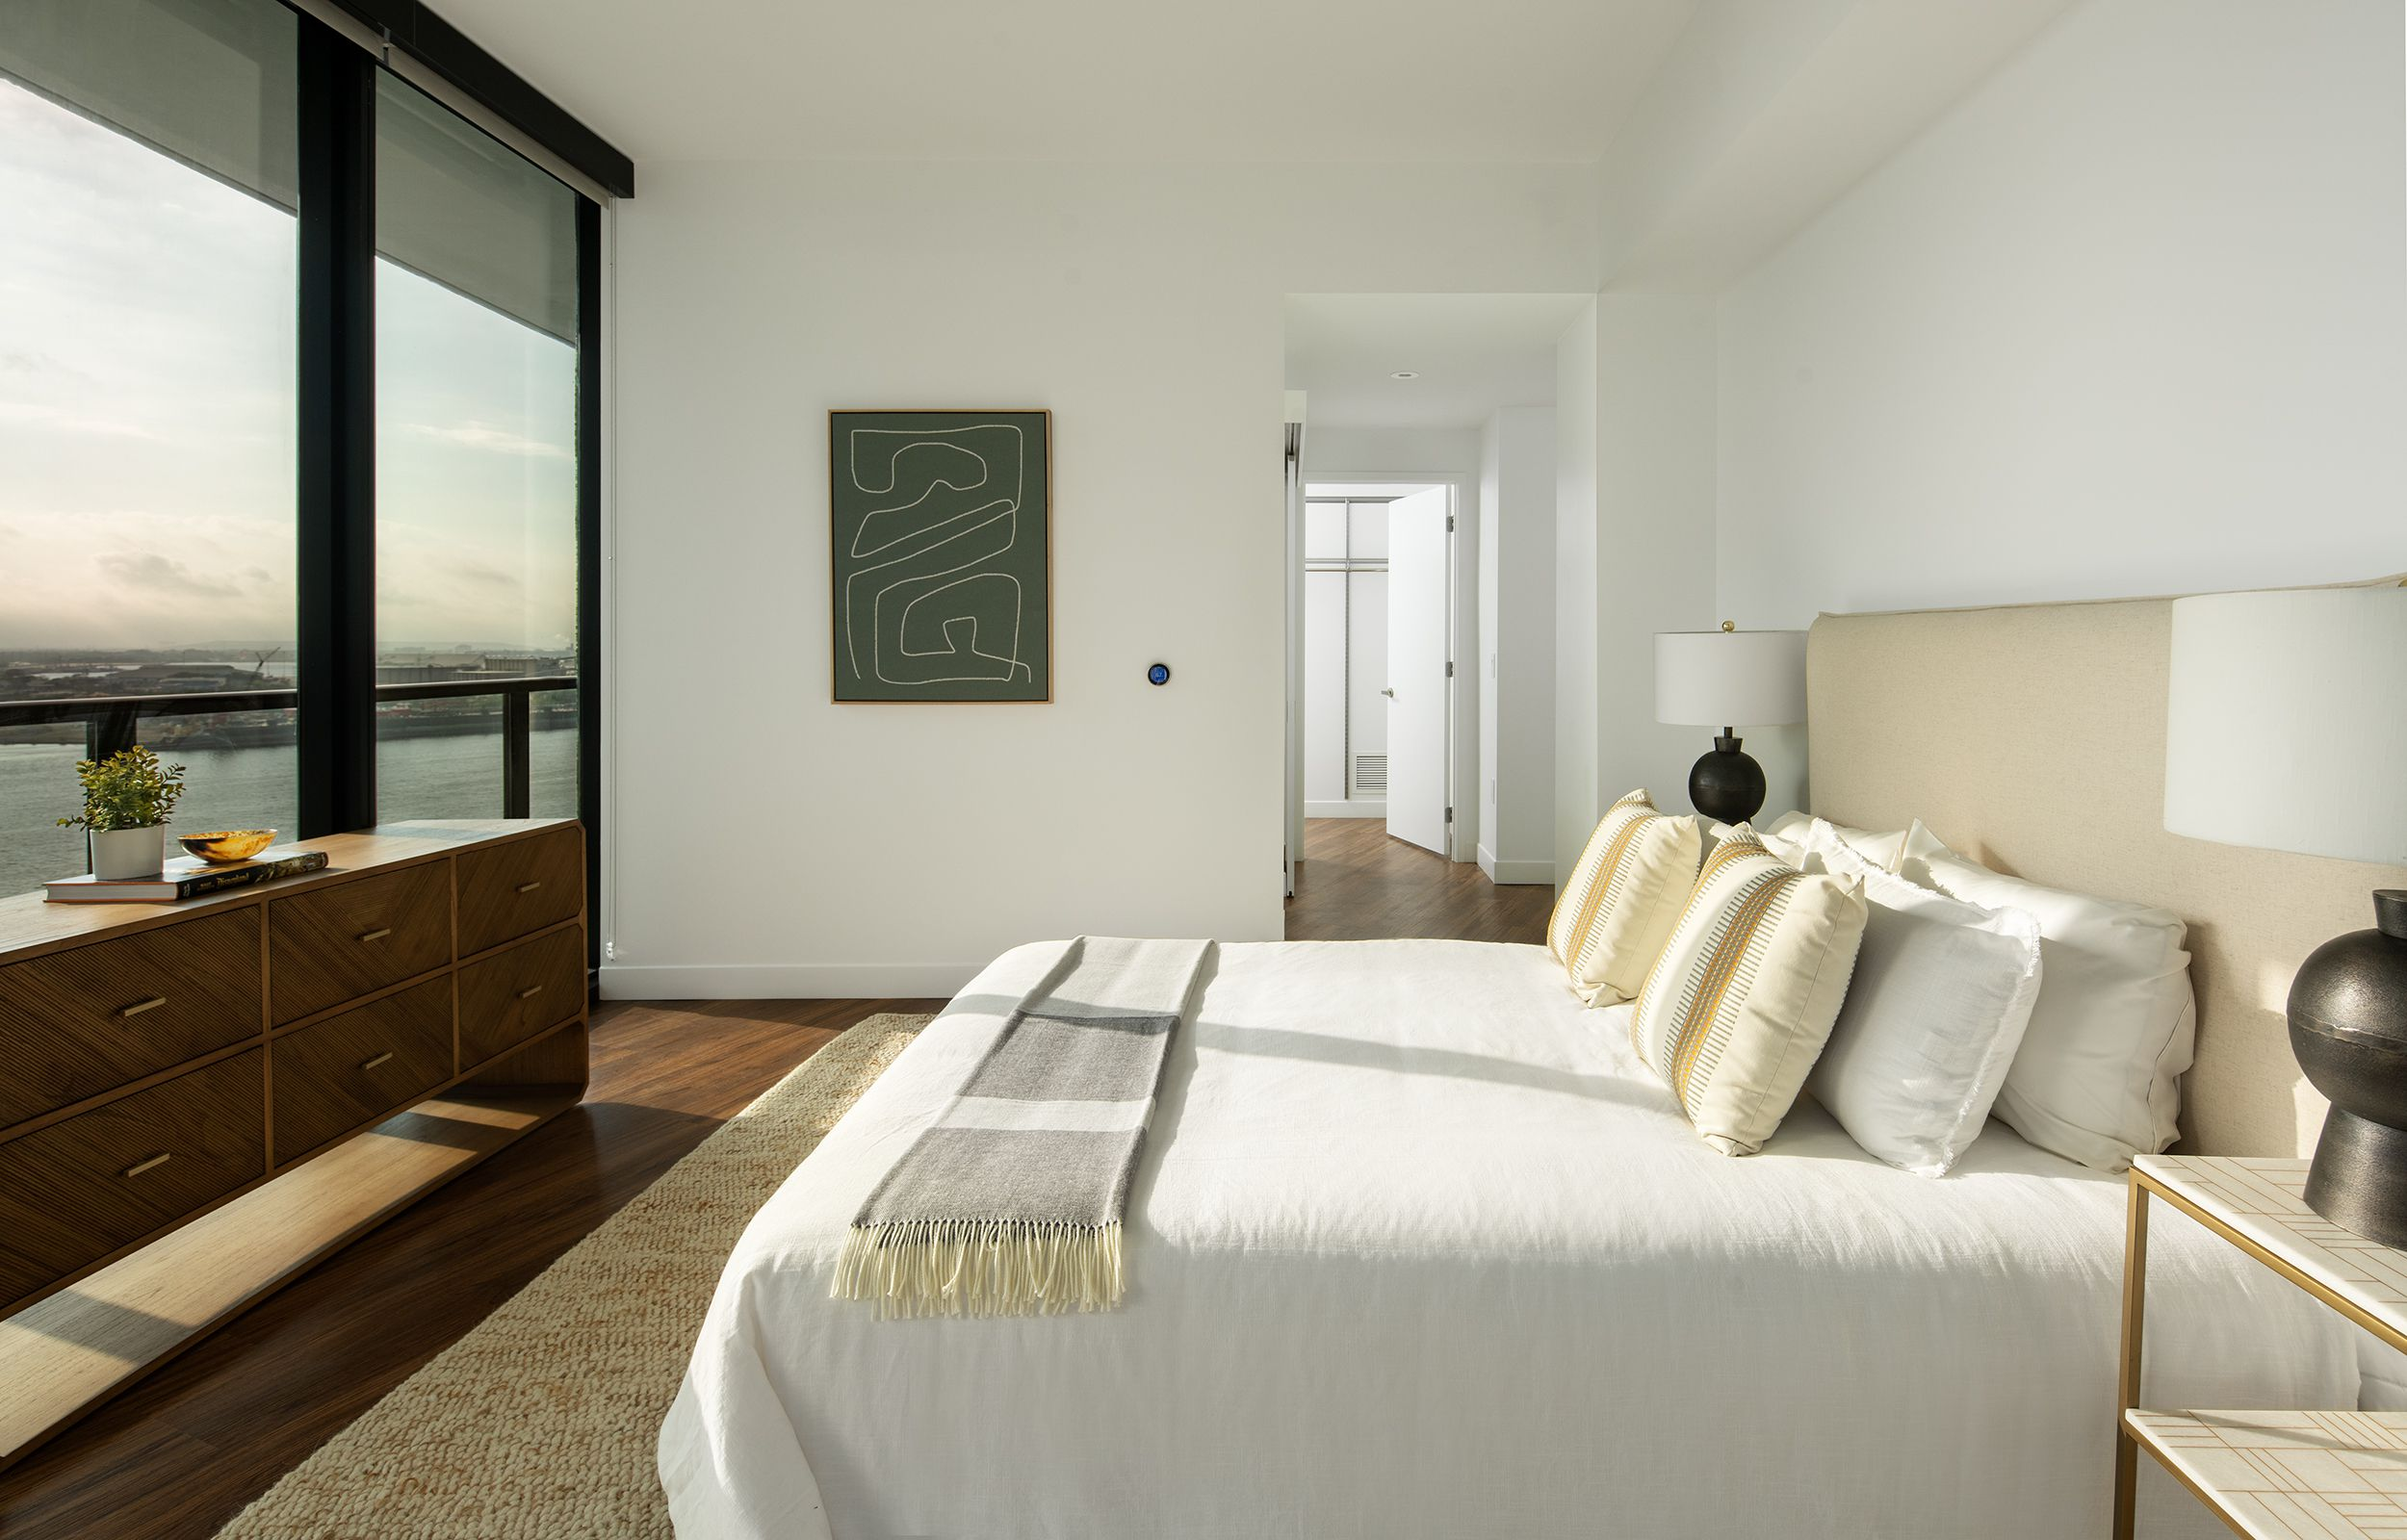 A bedroom inside the Heron Apartment Tower.